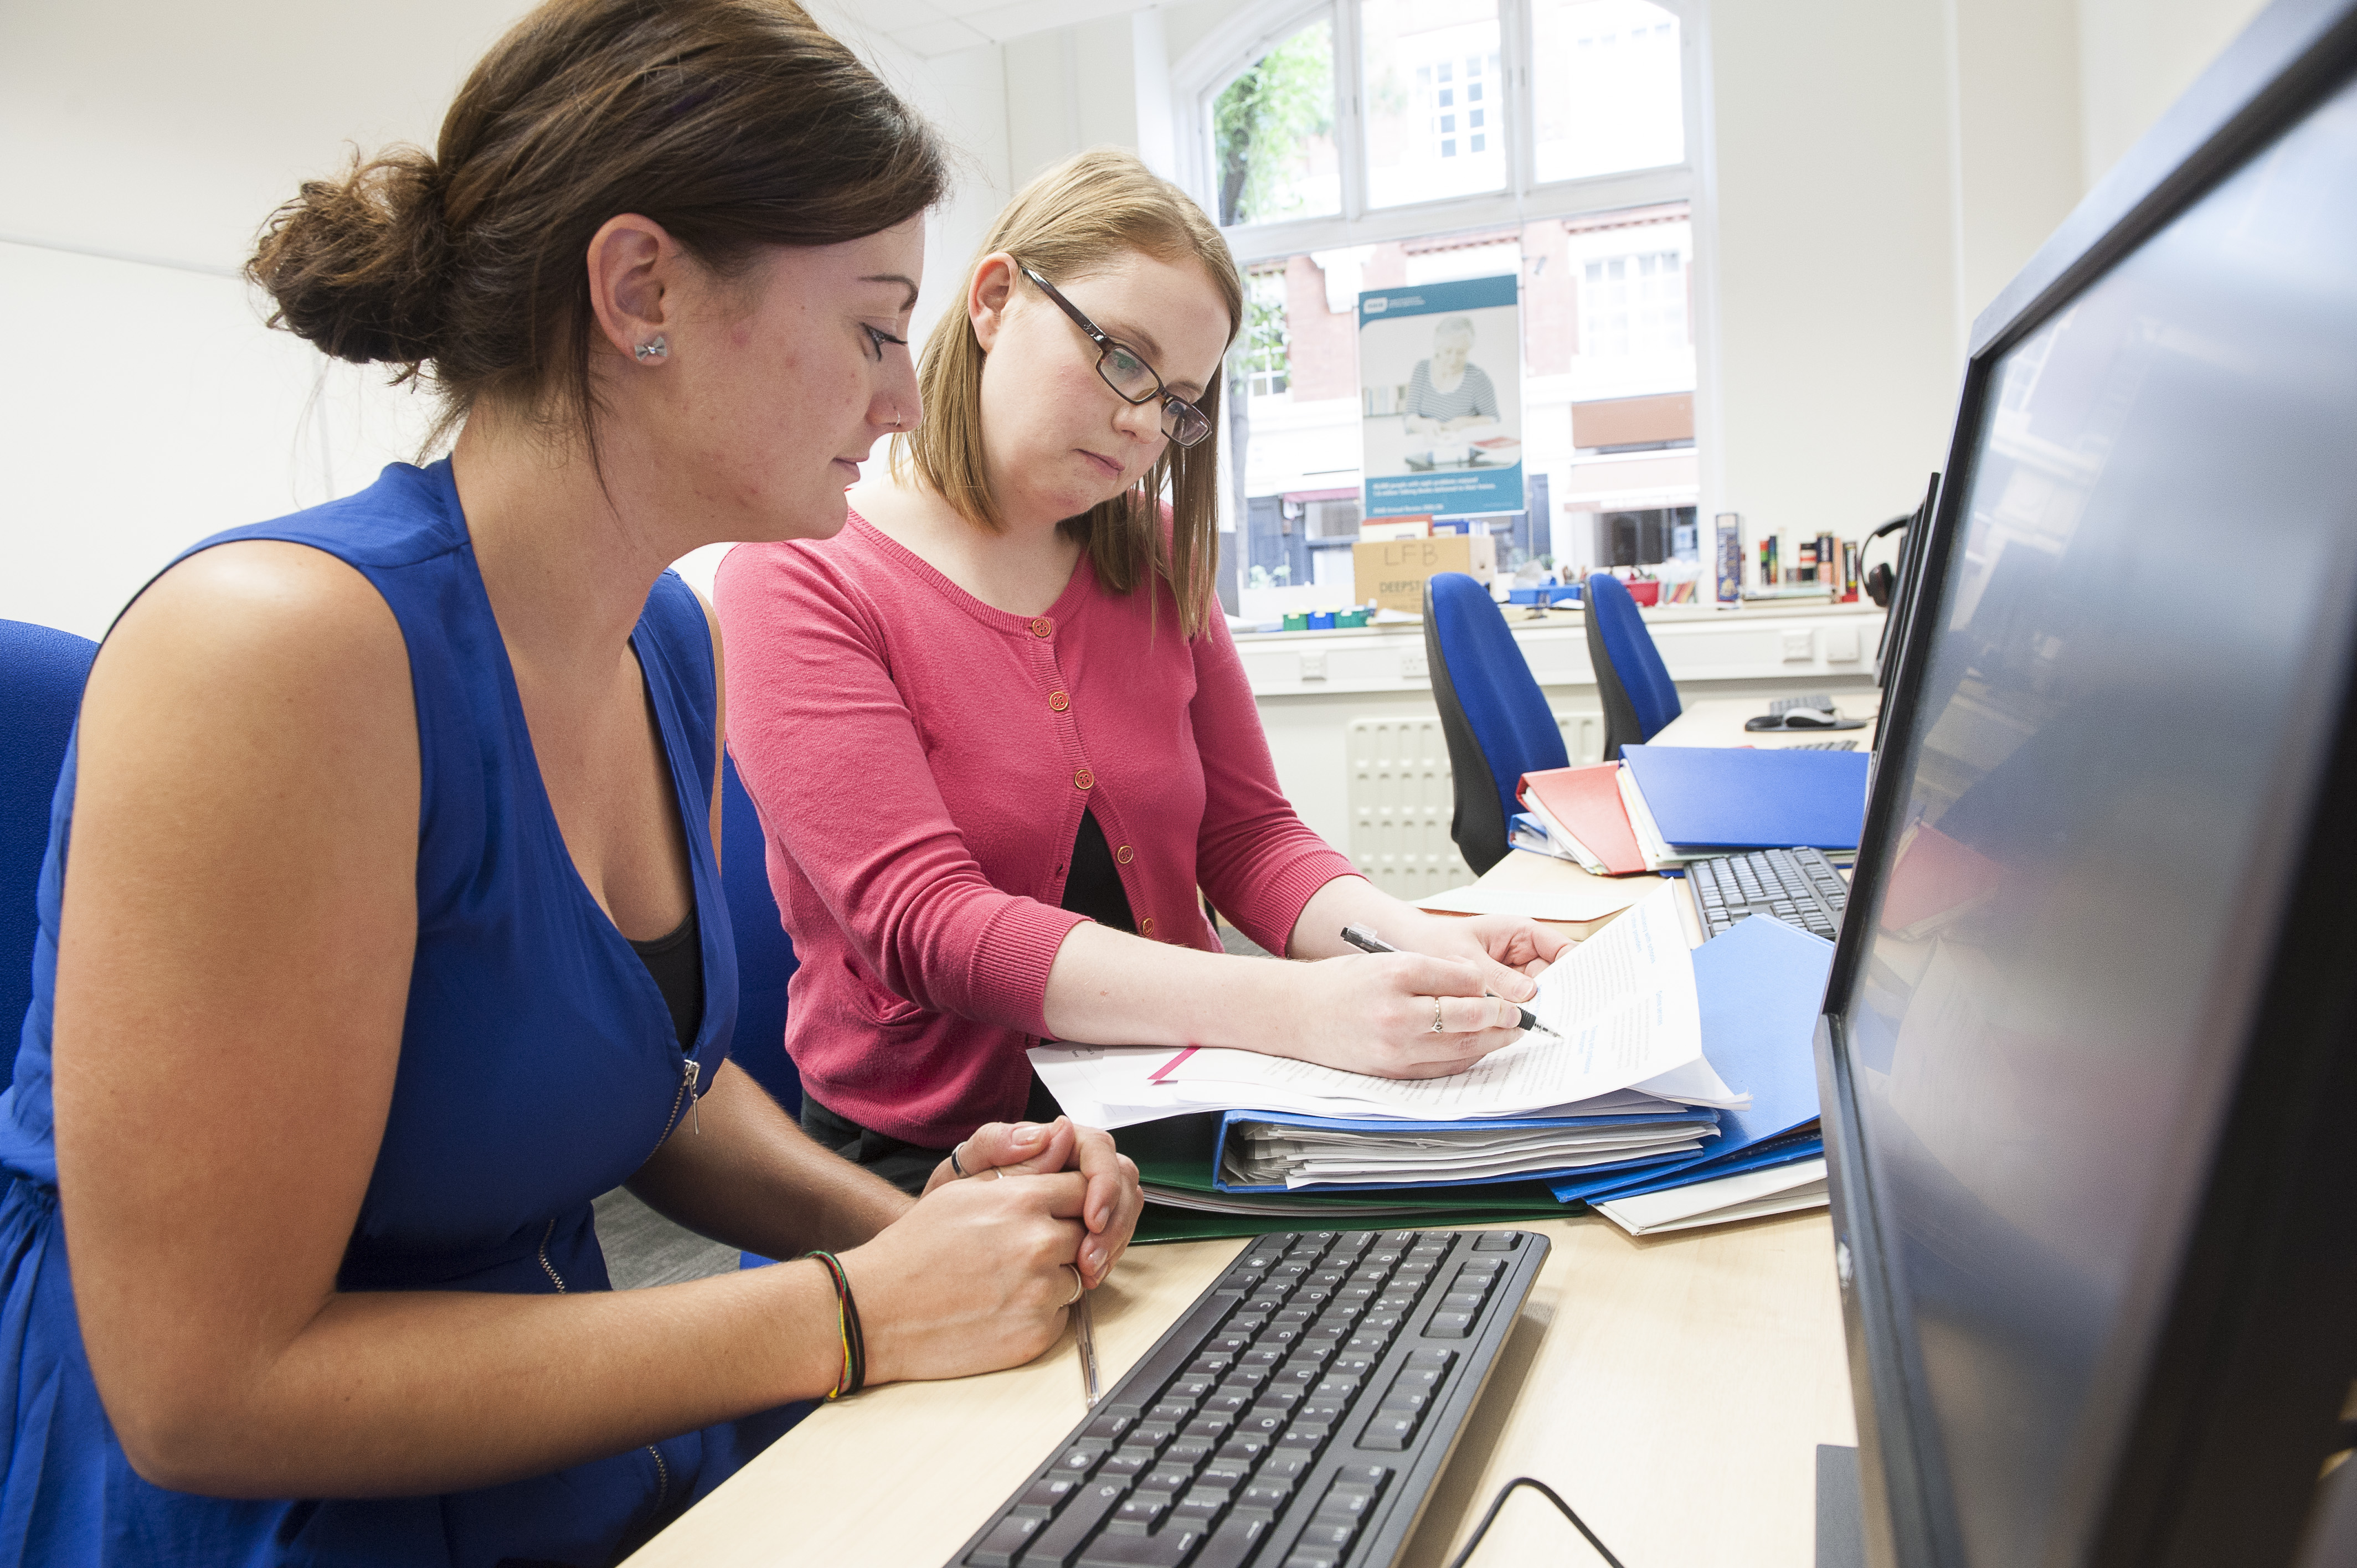 Course Image DACPD93-1120 - Developing Writing Skills in Adults with Dyslexia